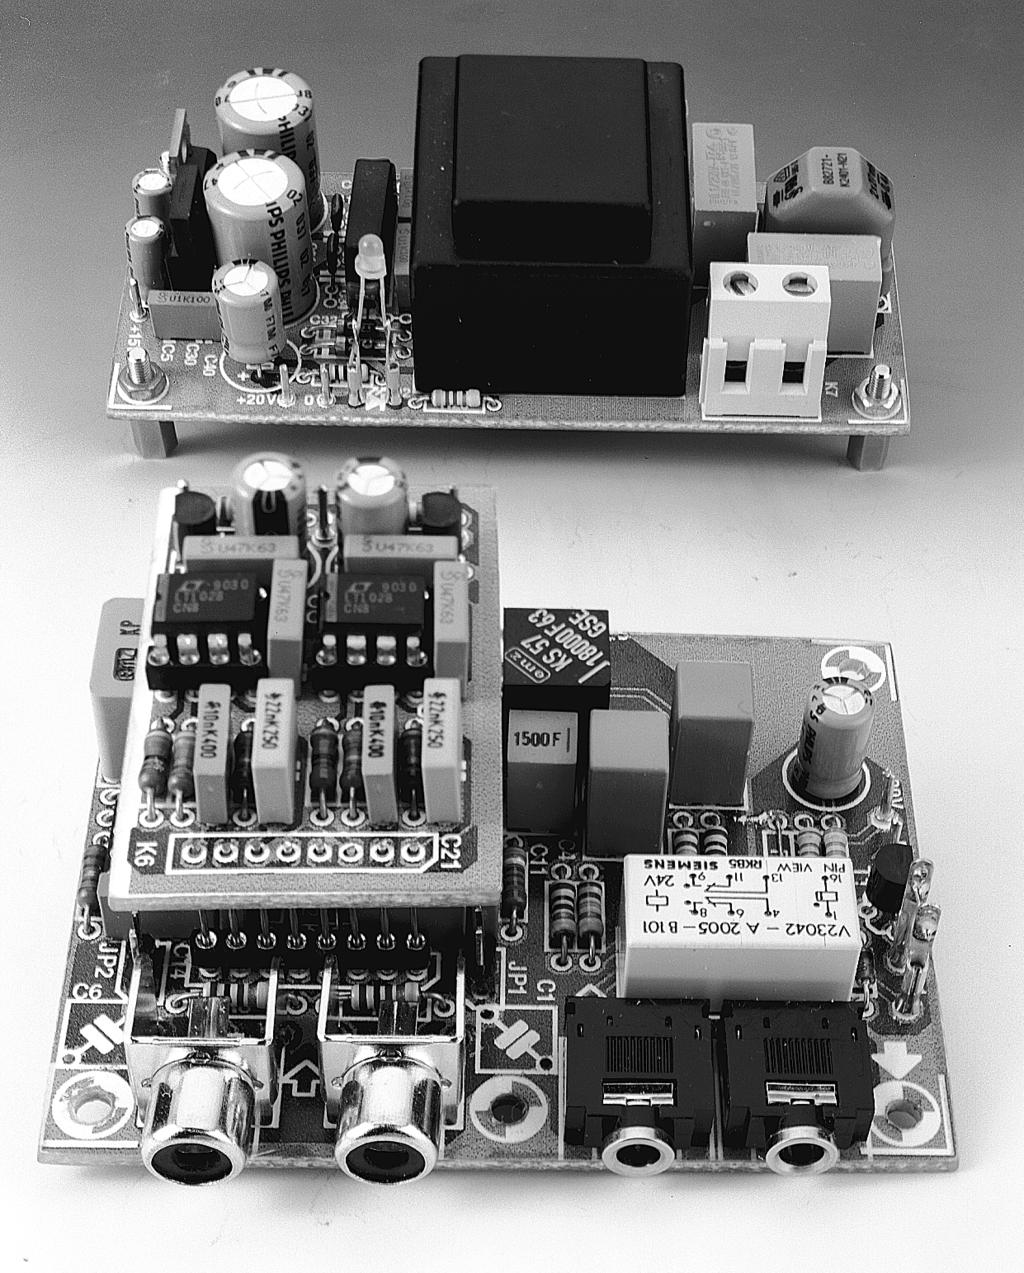 Figure. The completed prototype preamplifier for use with dynamic and/or moving-coil pickup elements.